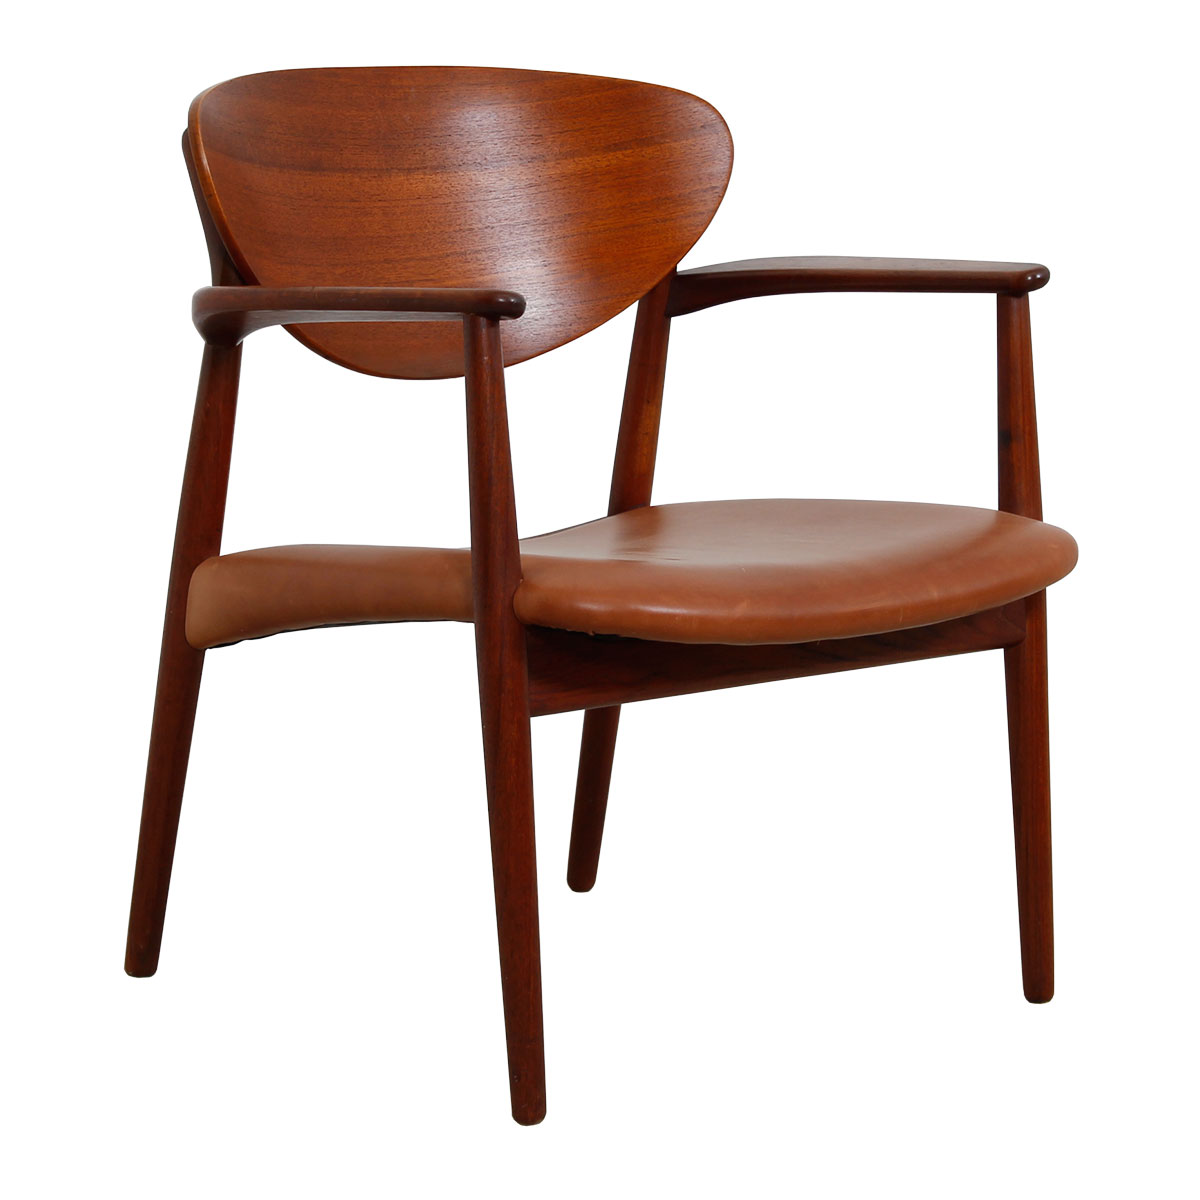 Georg Jensen Teak & Leather Arm Chair (1965)